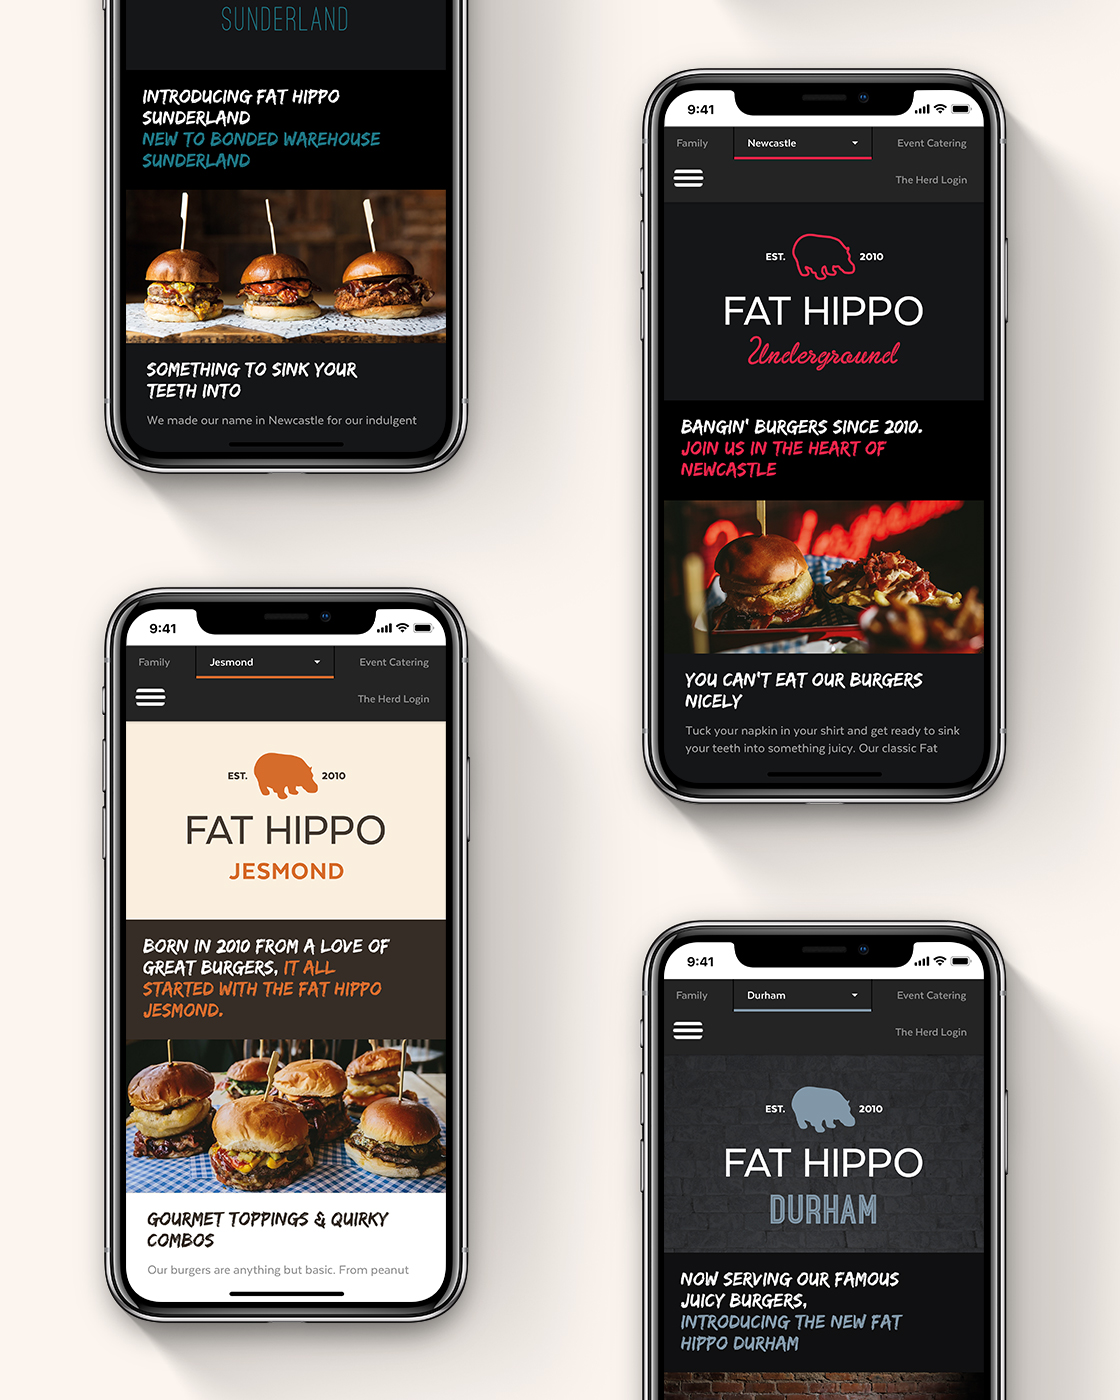 The Fat Hippo website on a mobile device